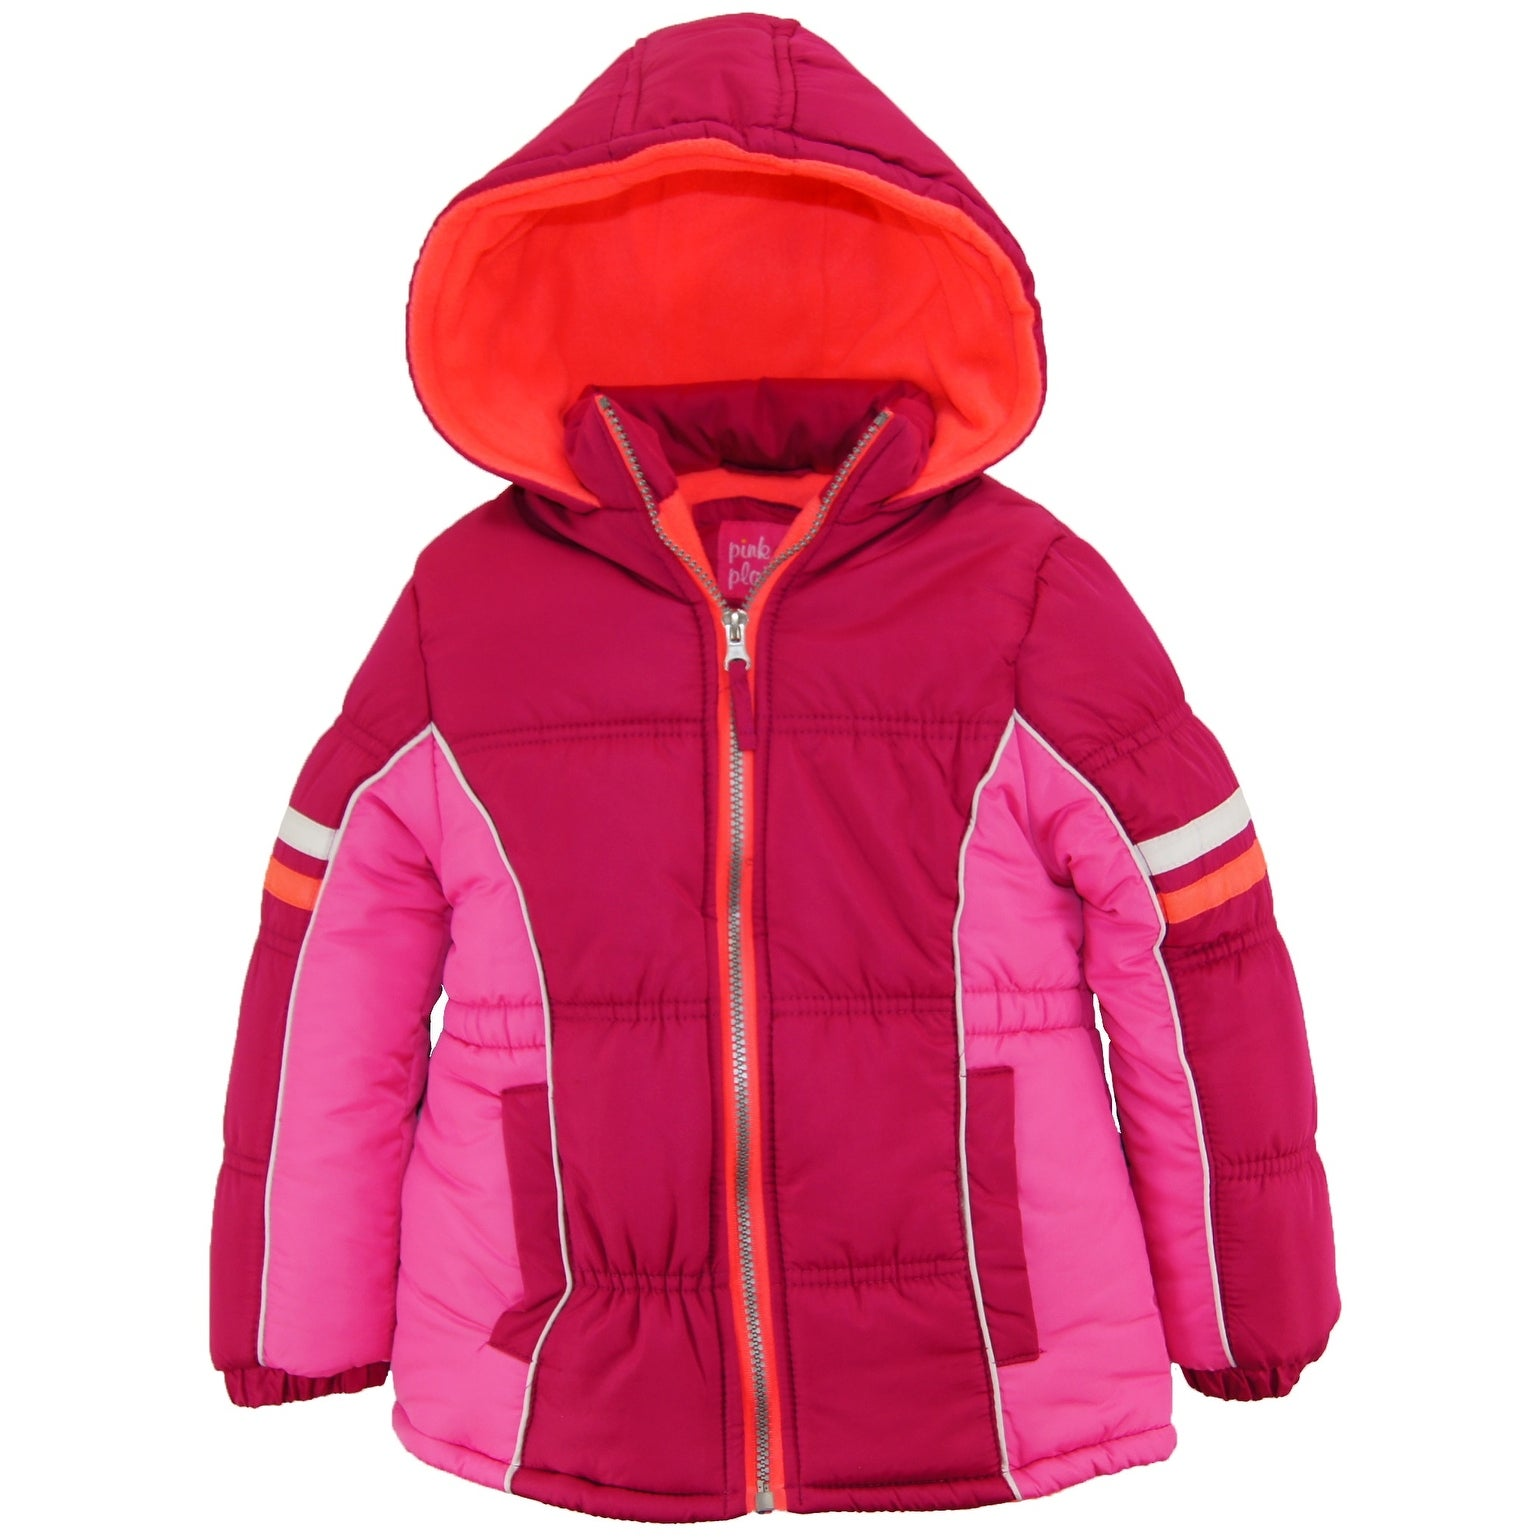 d59bfc66897 Shop Pink Platinum Girls Colorblock Active Fleece Lined Winter Coat Puffer  Jacket - Free Shipping On Orders Over $45 - Overstock - 19427865